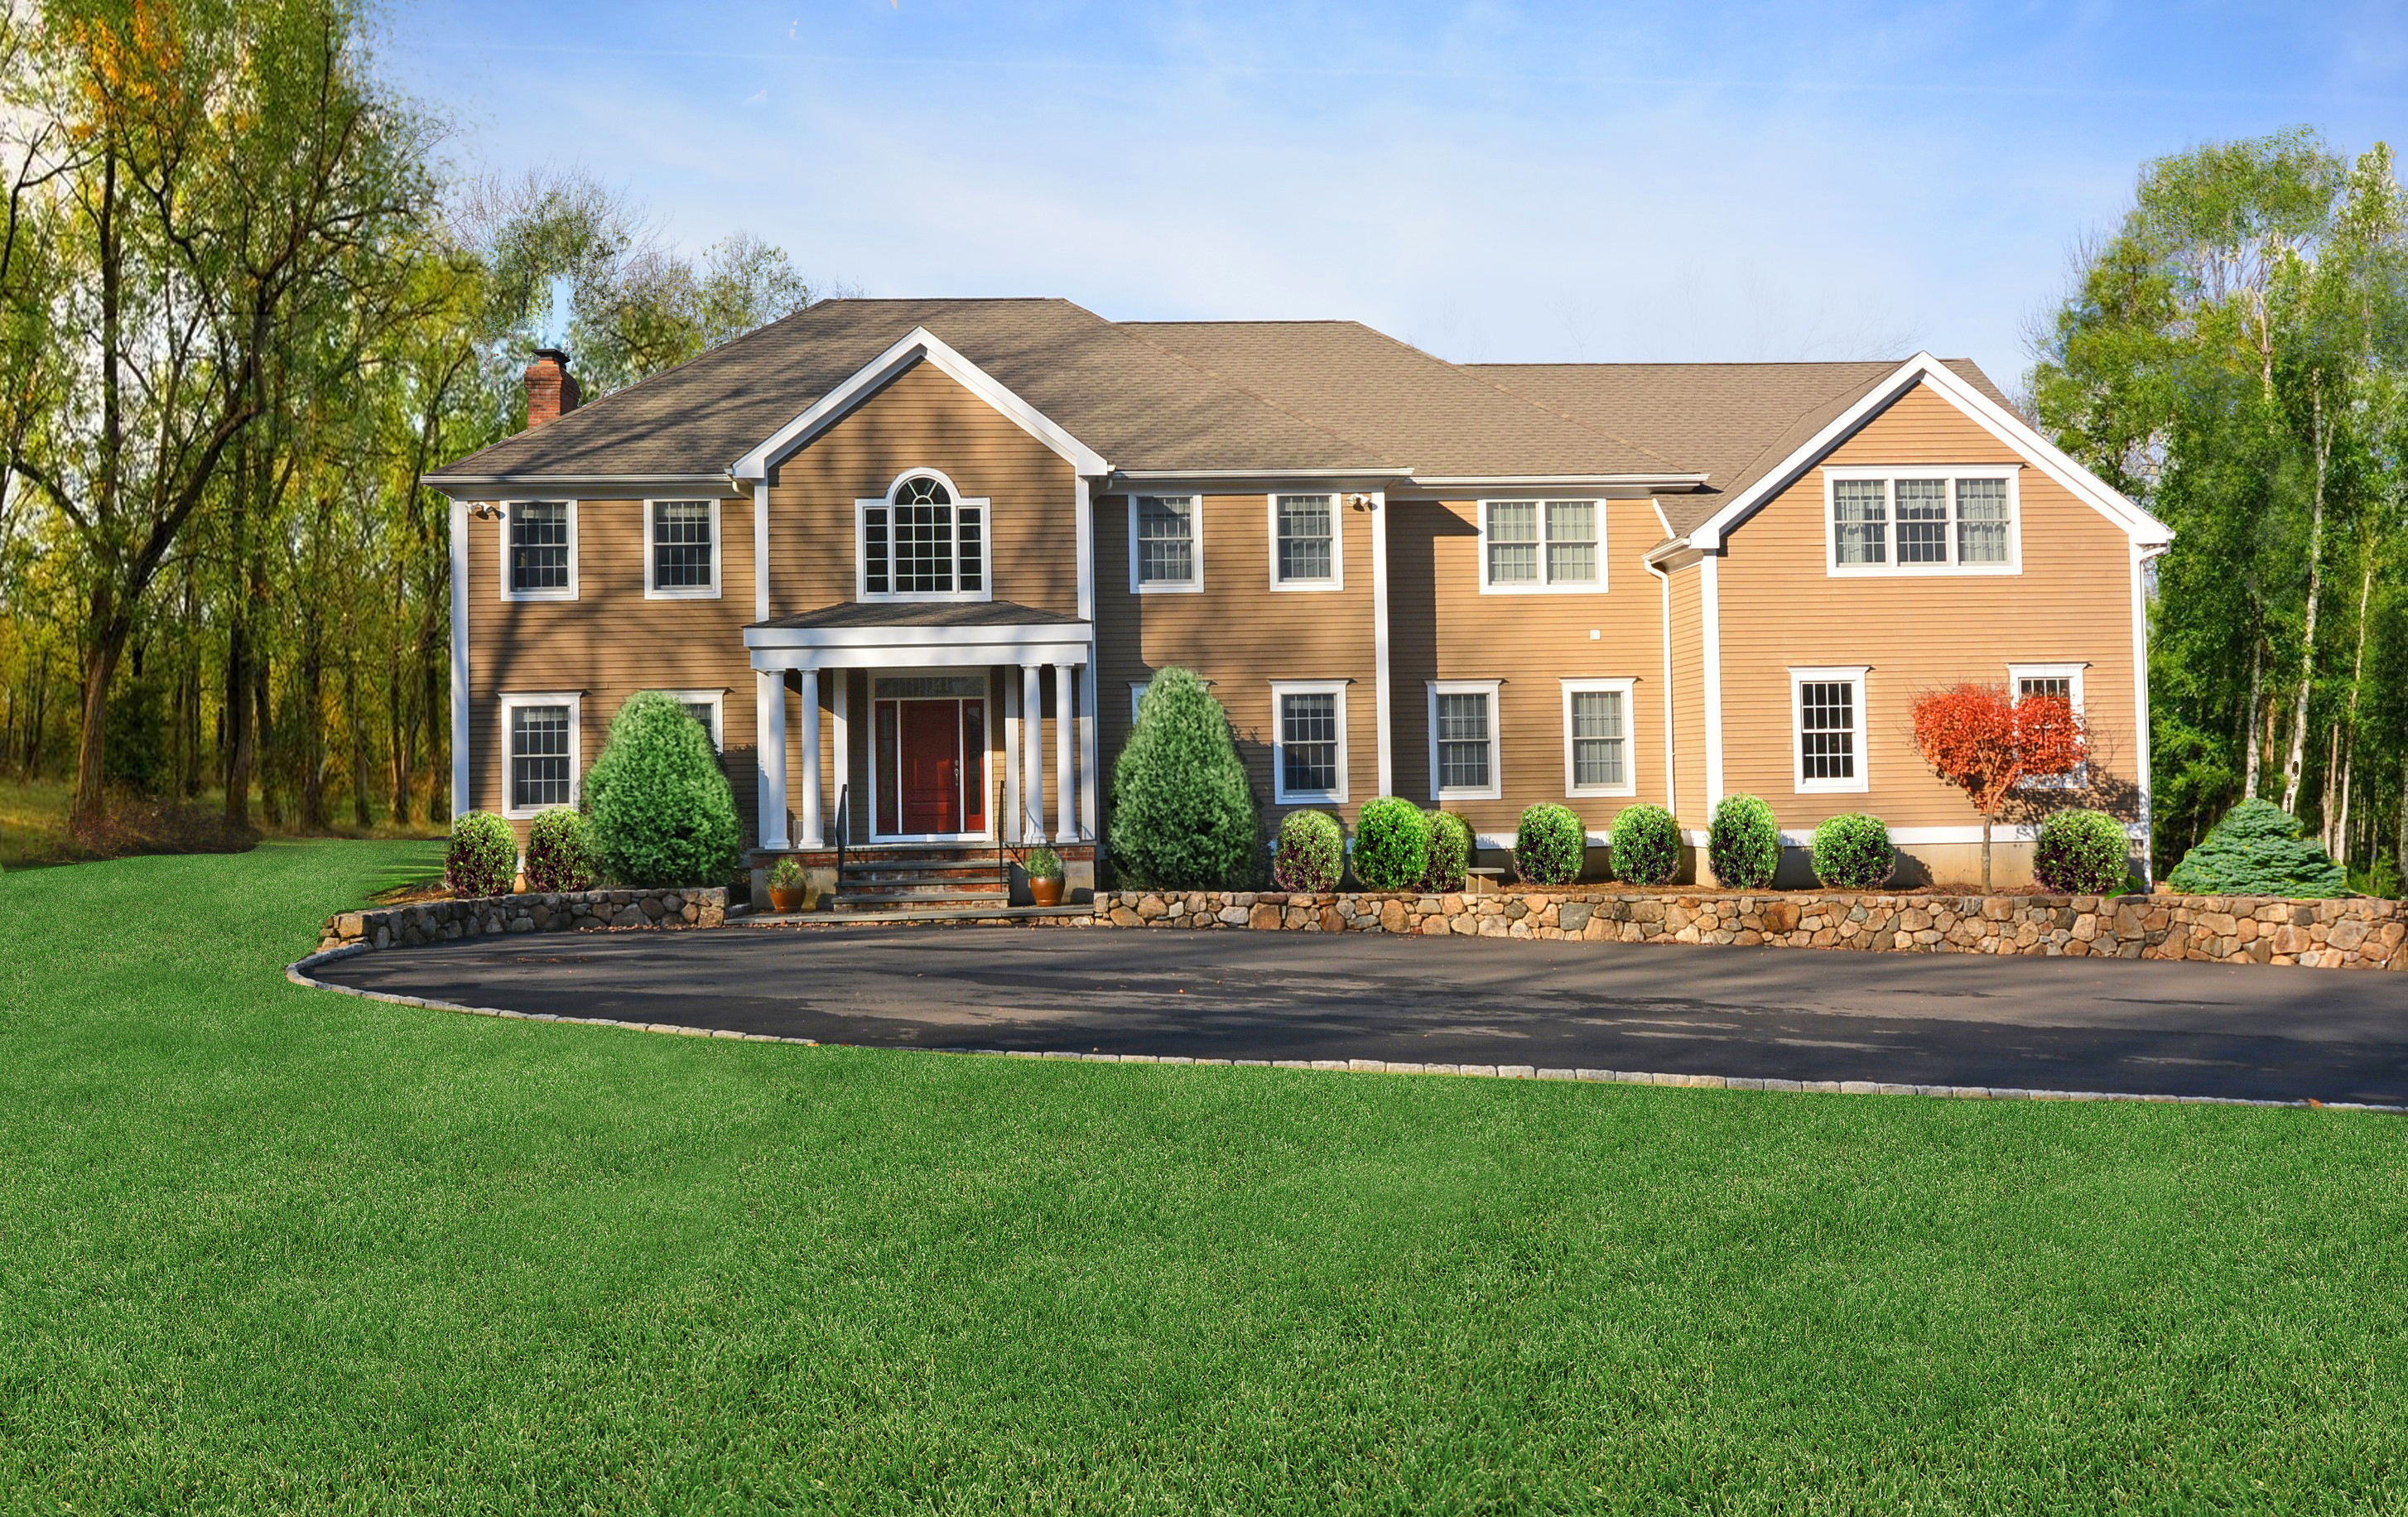 Single Family Home for Sale at Gracious Center Hall Colonial 163 Old Redding Road Redding, Connecticut 06896 United States